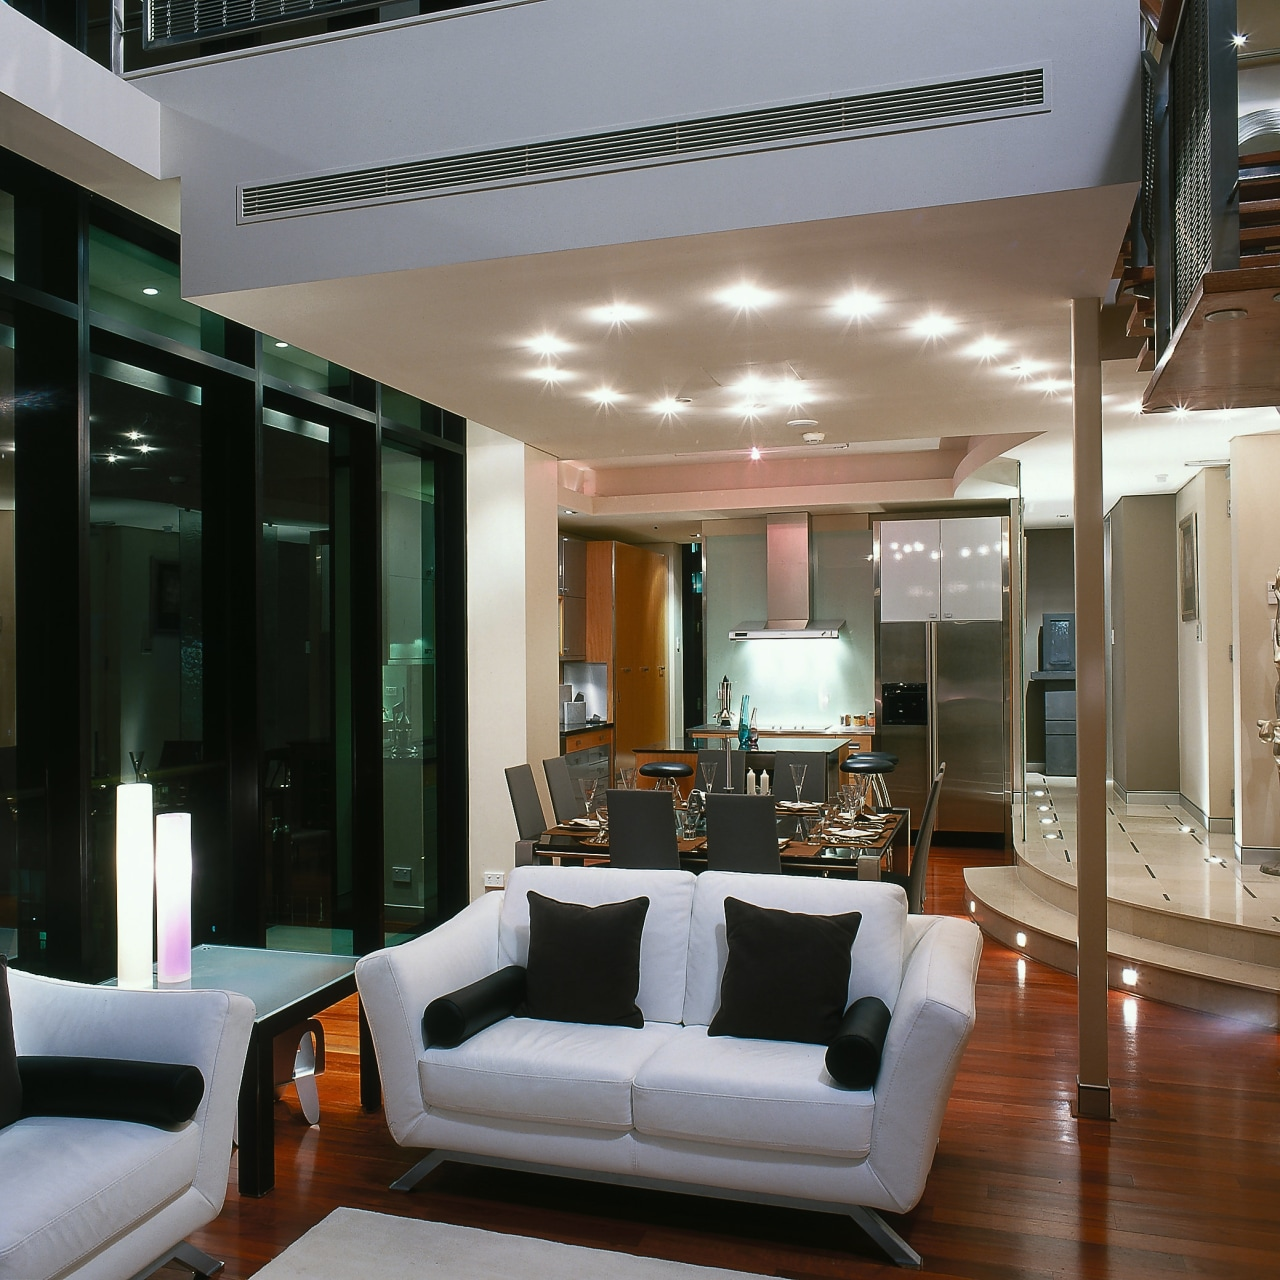 View of the dining, lounge & kitchen areas ceiling, interior design, living room, real estate, room, window, gray, black